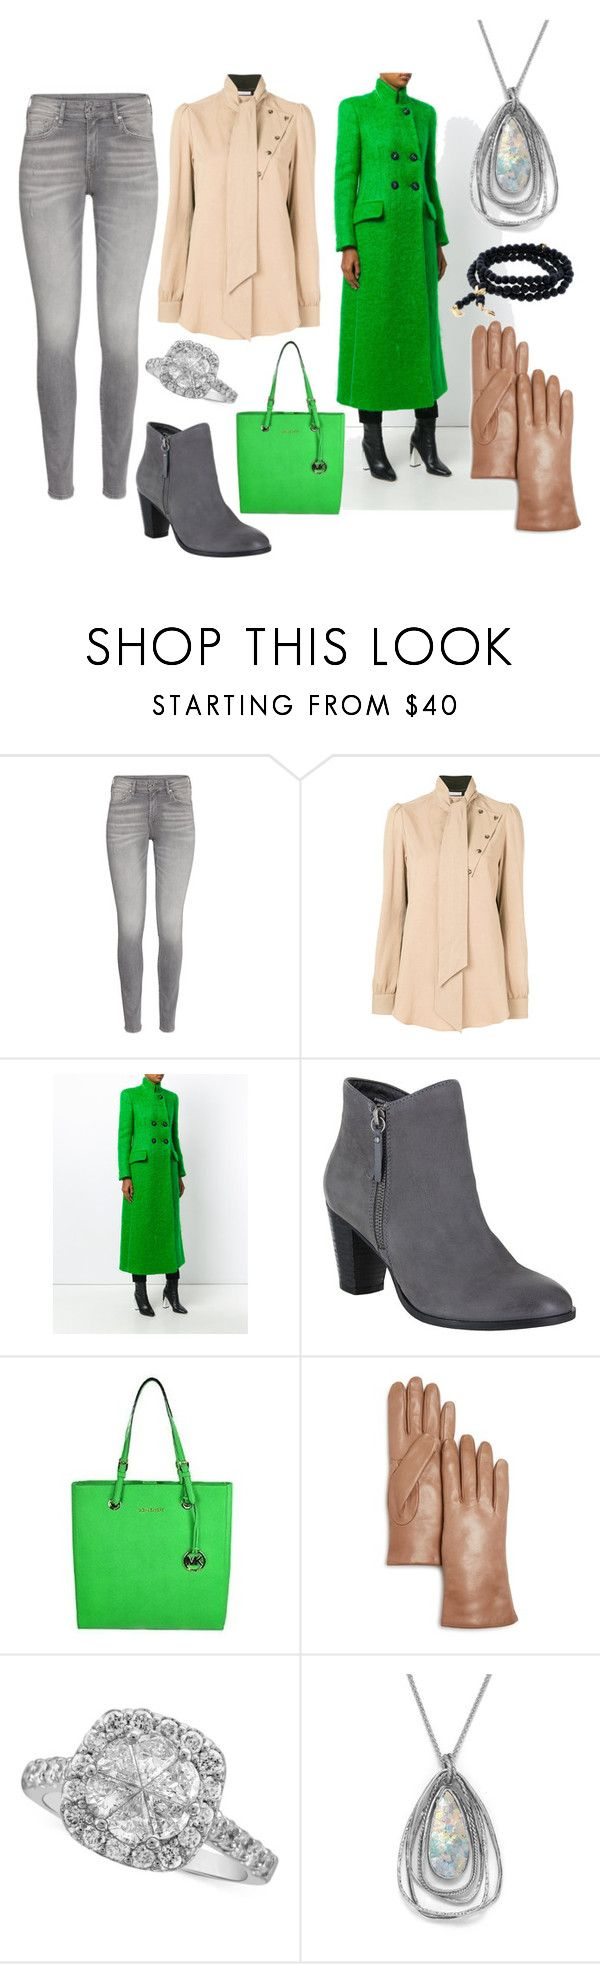 """""""winter outfit"""" by moestesoh ❤ liked on Polyvore featuring J.W. Anderson, Giorgio Armani, MIA, MICHAEL Michael Kors, Bloomingdale's, BillyTheTree and Tamara Comolli"""